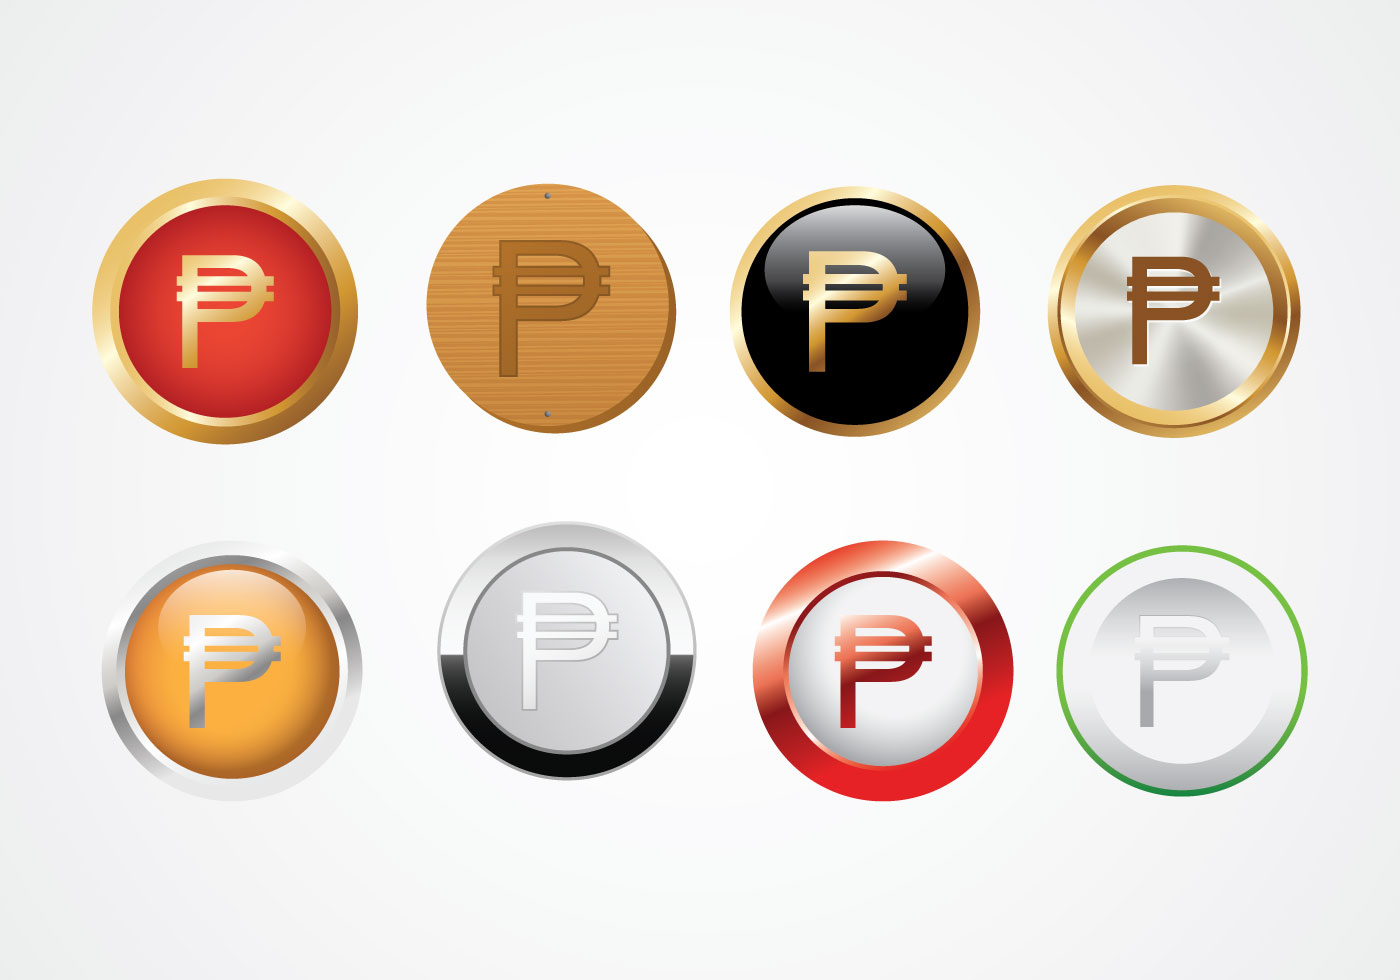 Currency peso symbol vector download free vector art stock currency peso symbol vector download free vector art stock graphics images biocorpaavc